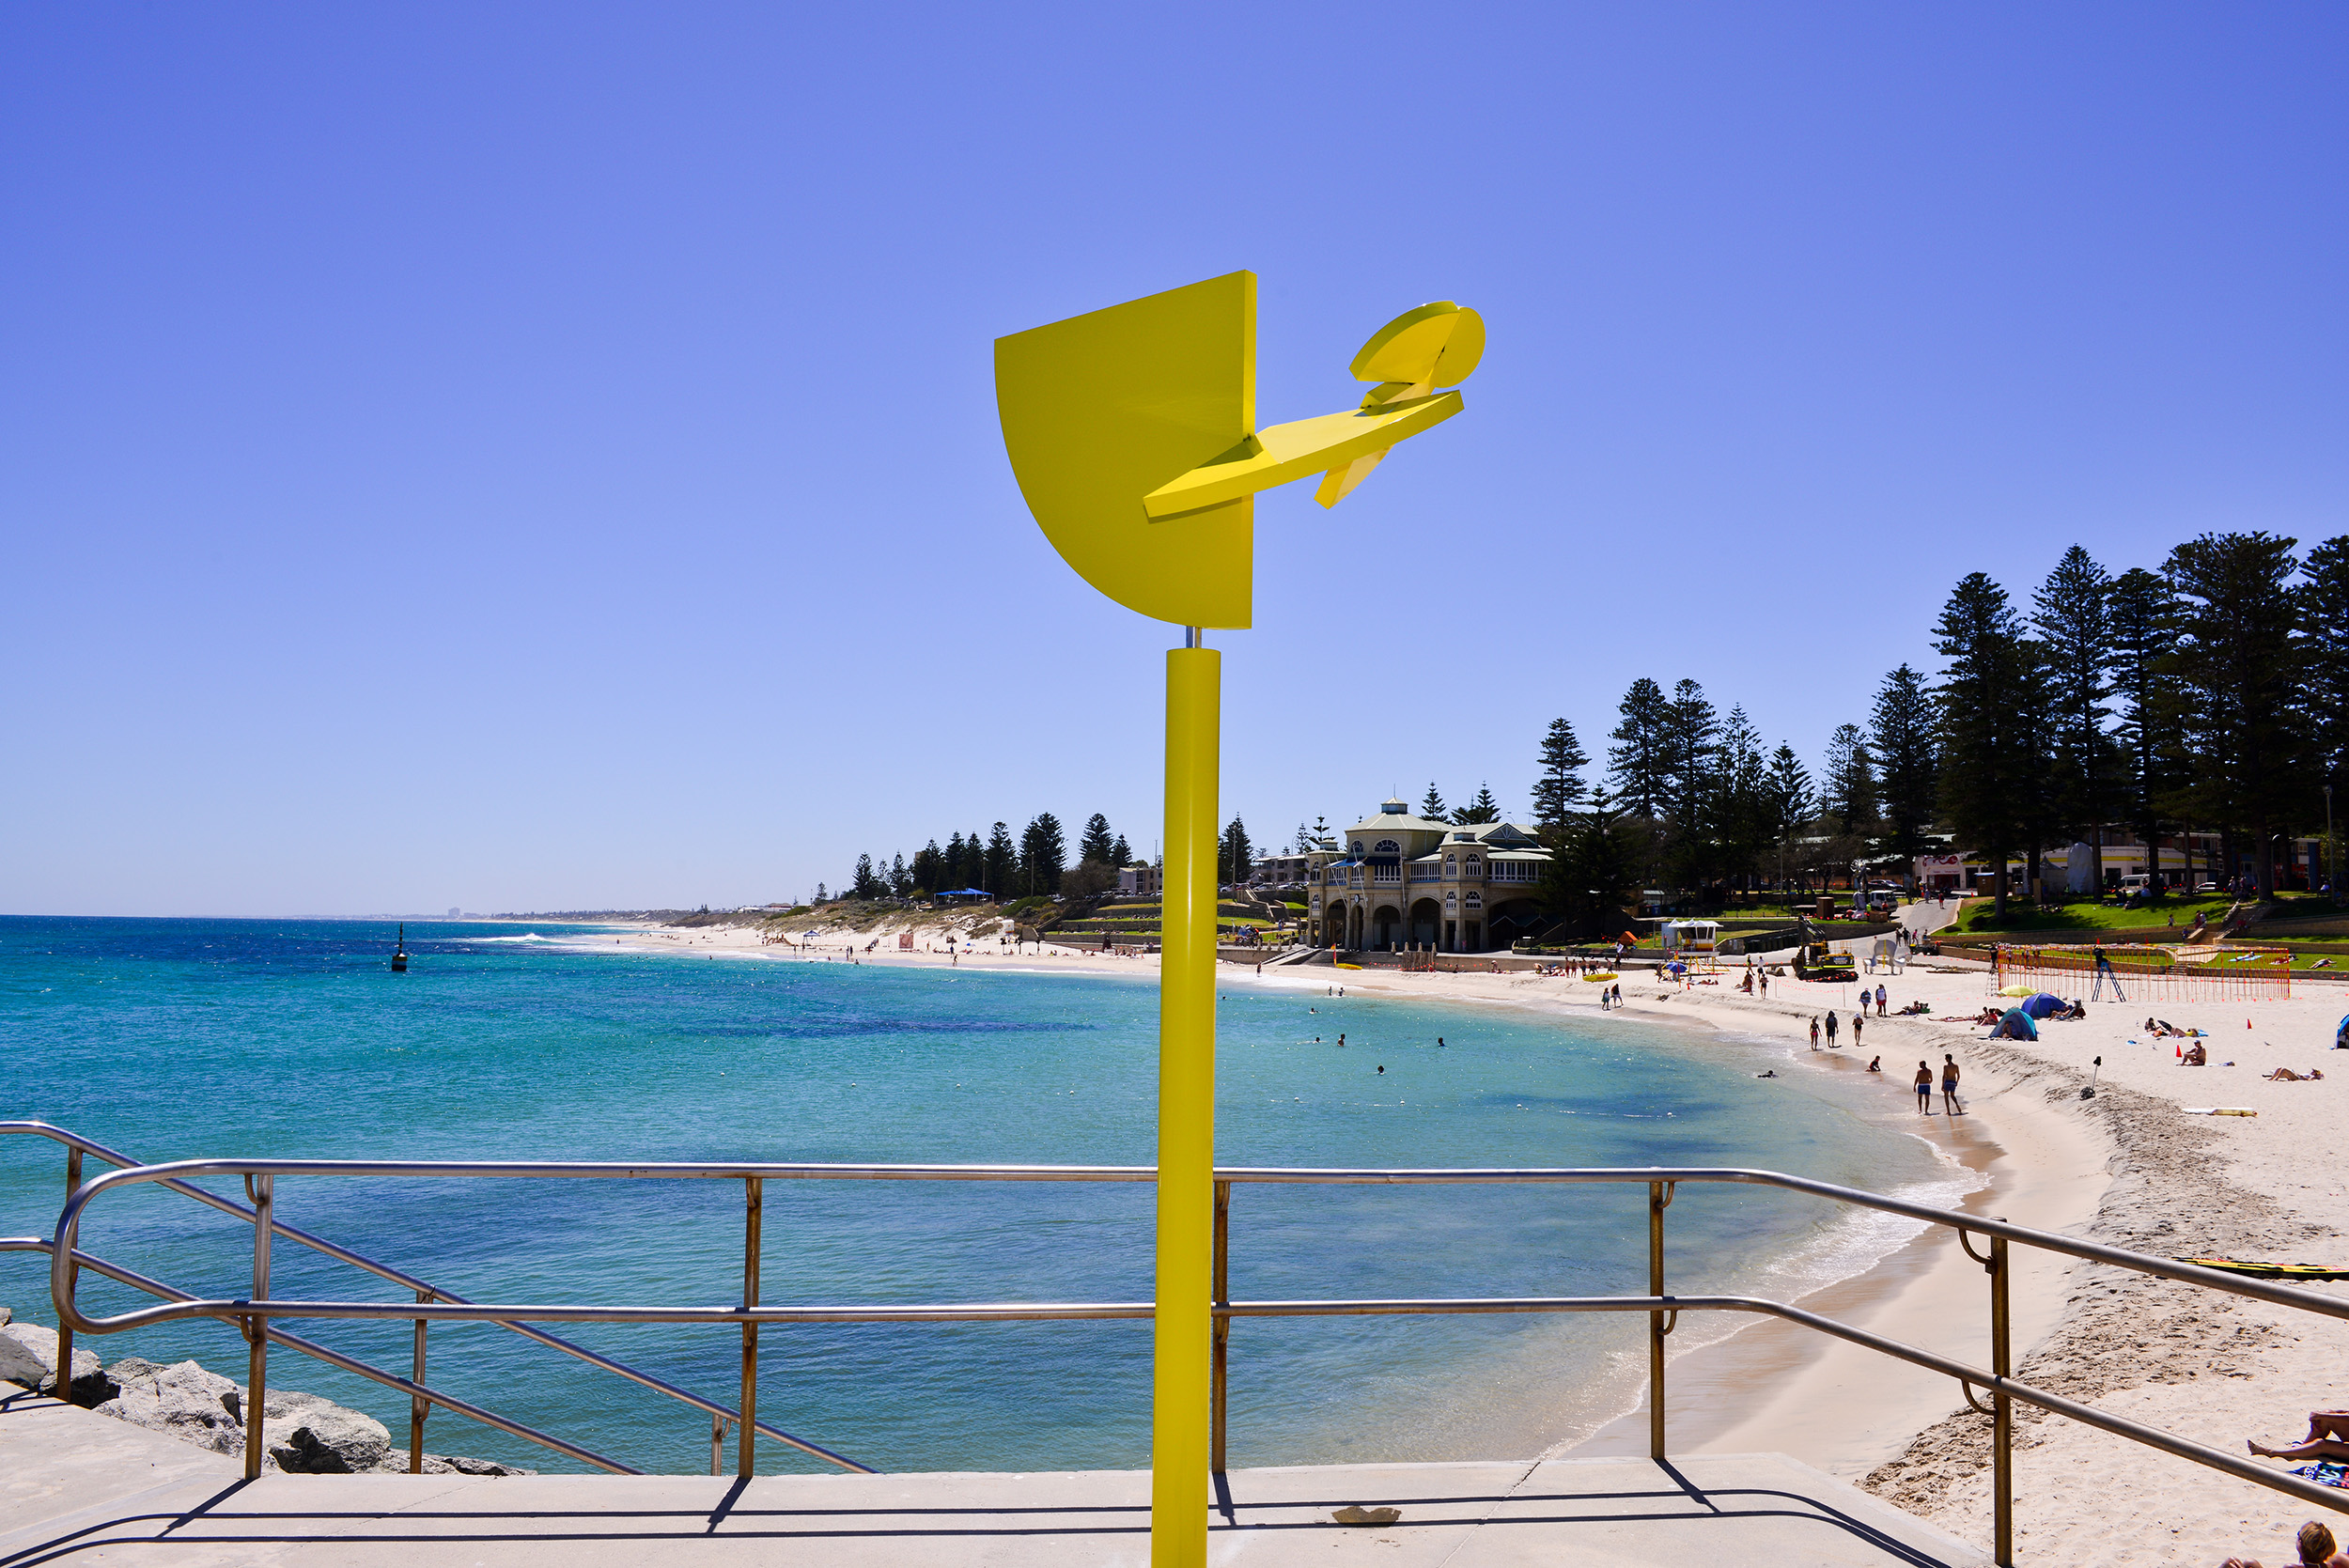 Ivan Black, Golden Section, Sculpture by the Sea, Cottesloe 2016. Photo Clyde Yee